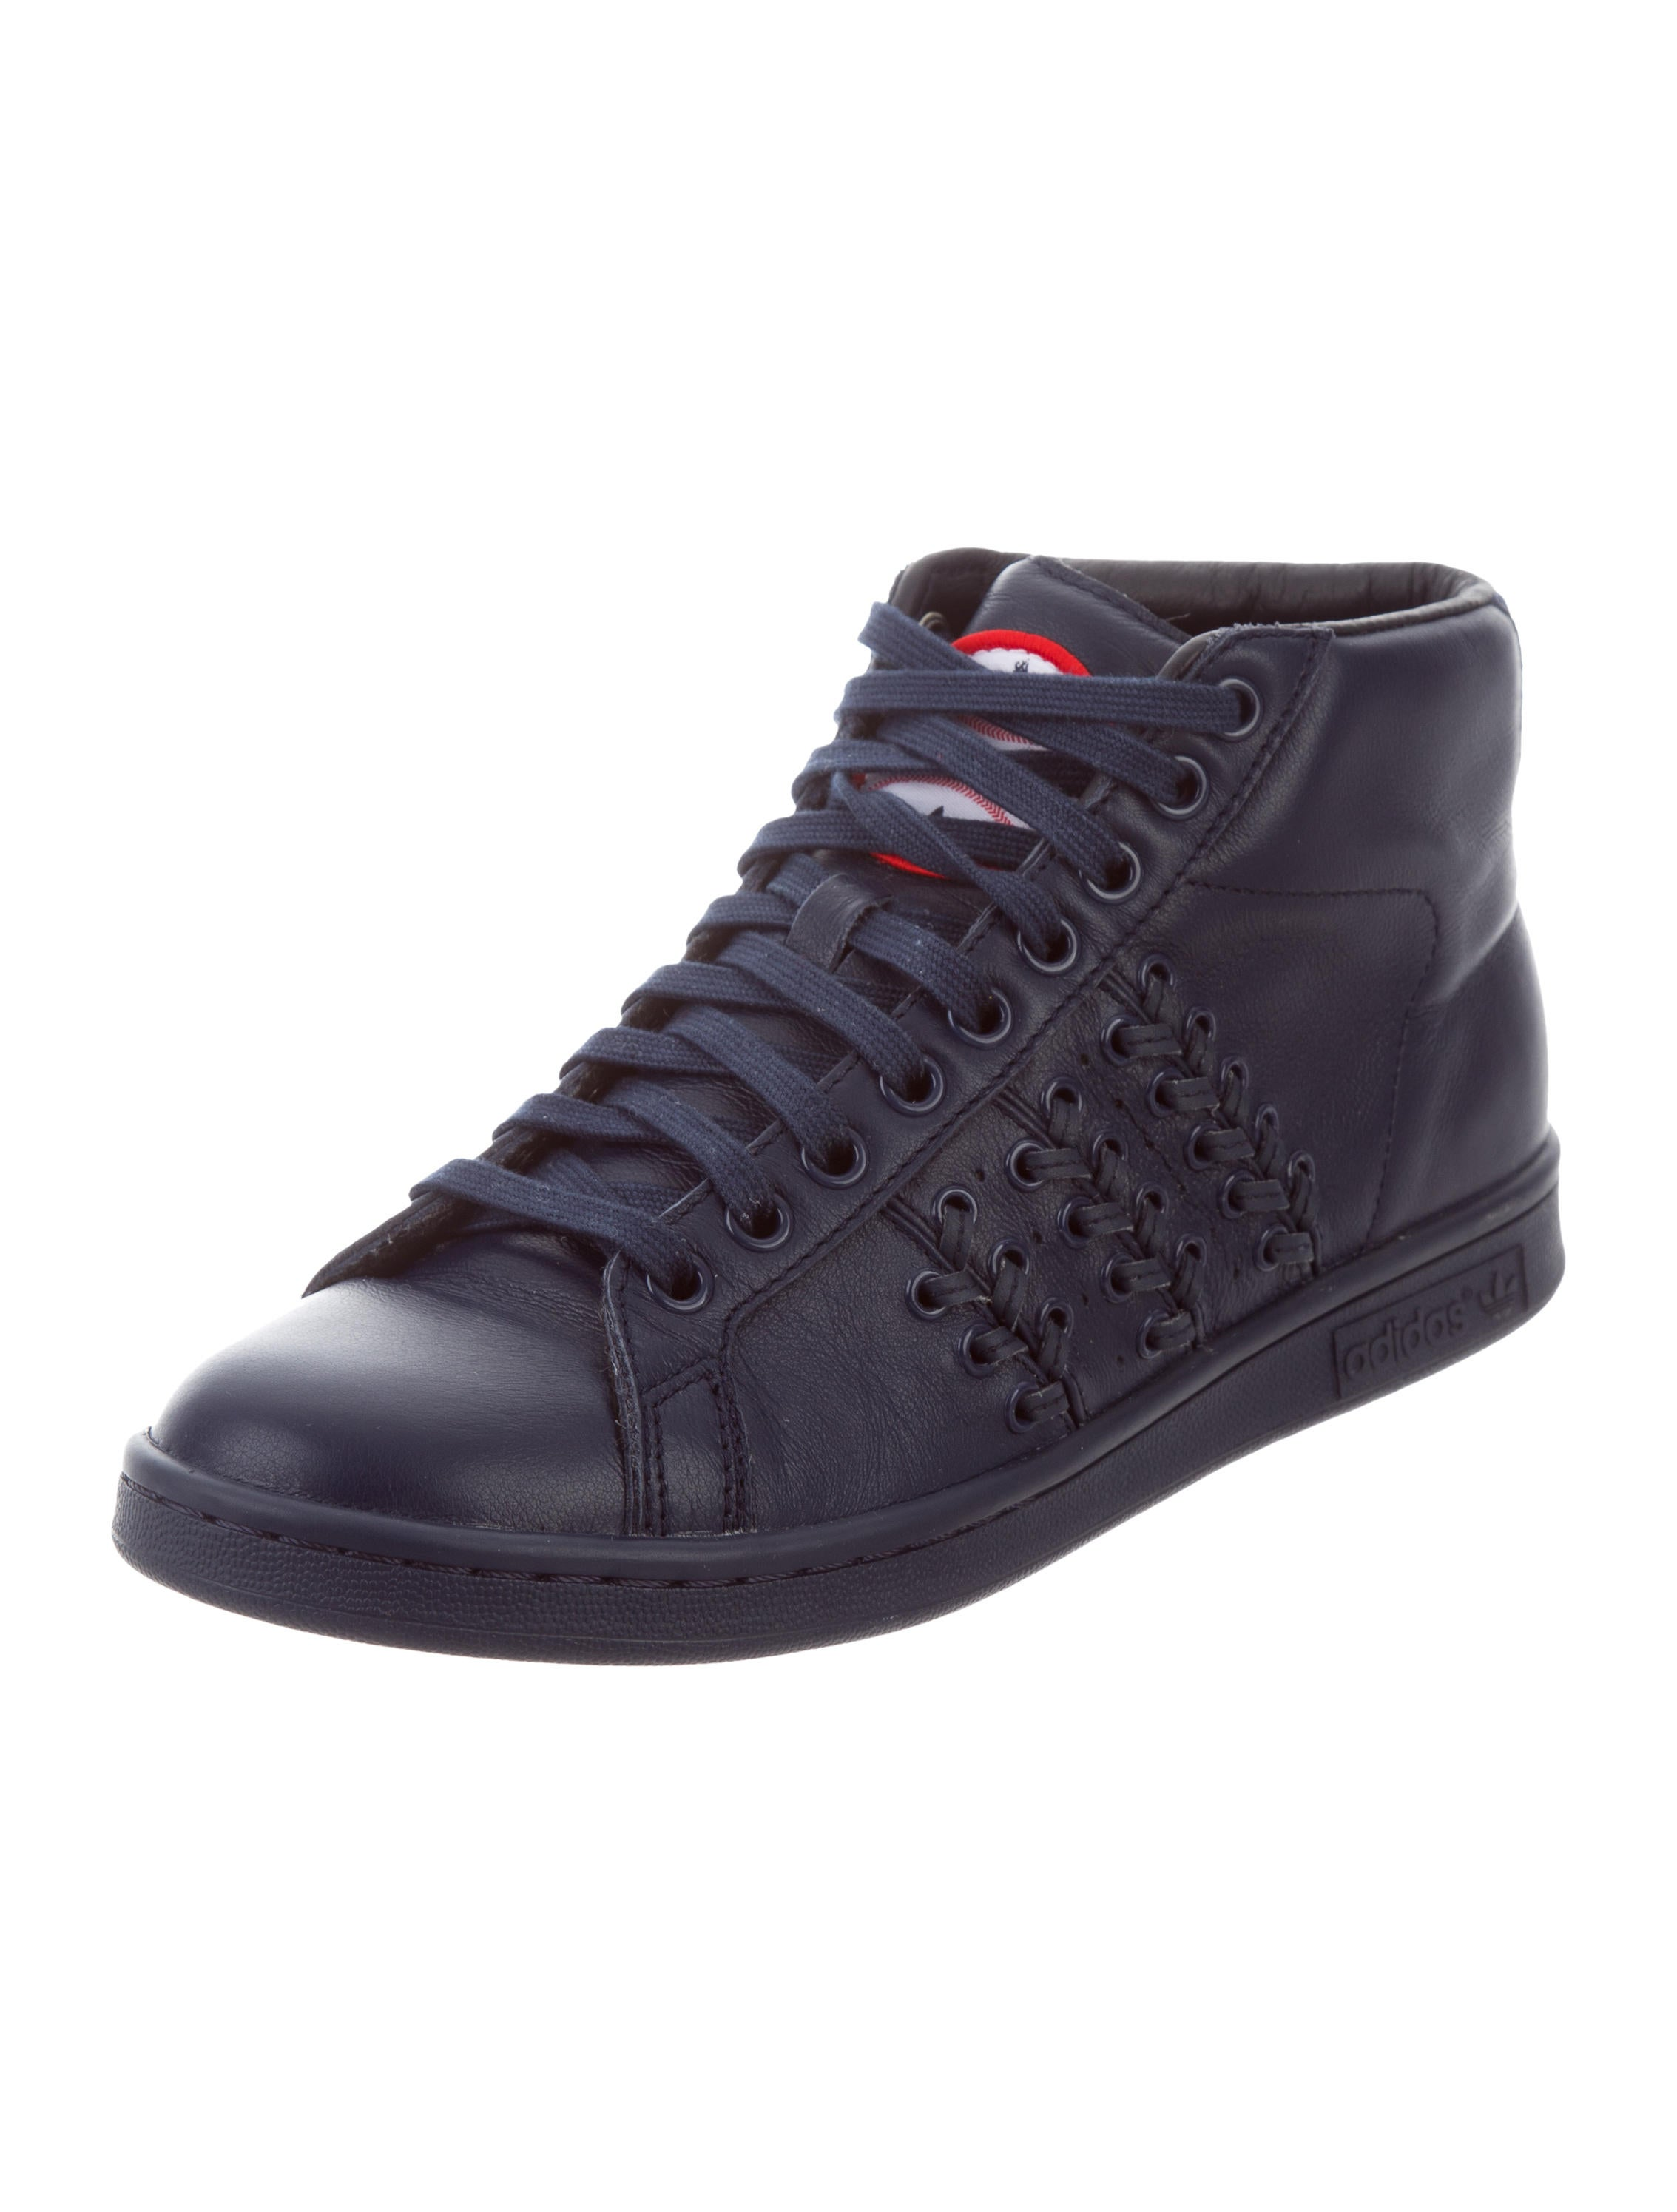 adidas Originals x Opening Ceremony Whipstitch High-Top Sneakers professional sale online where to buy low price sale order cg9IiLZ4jc